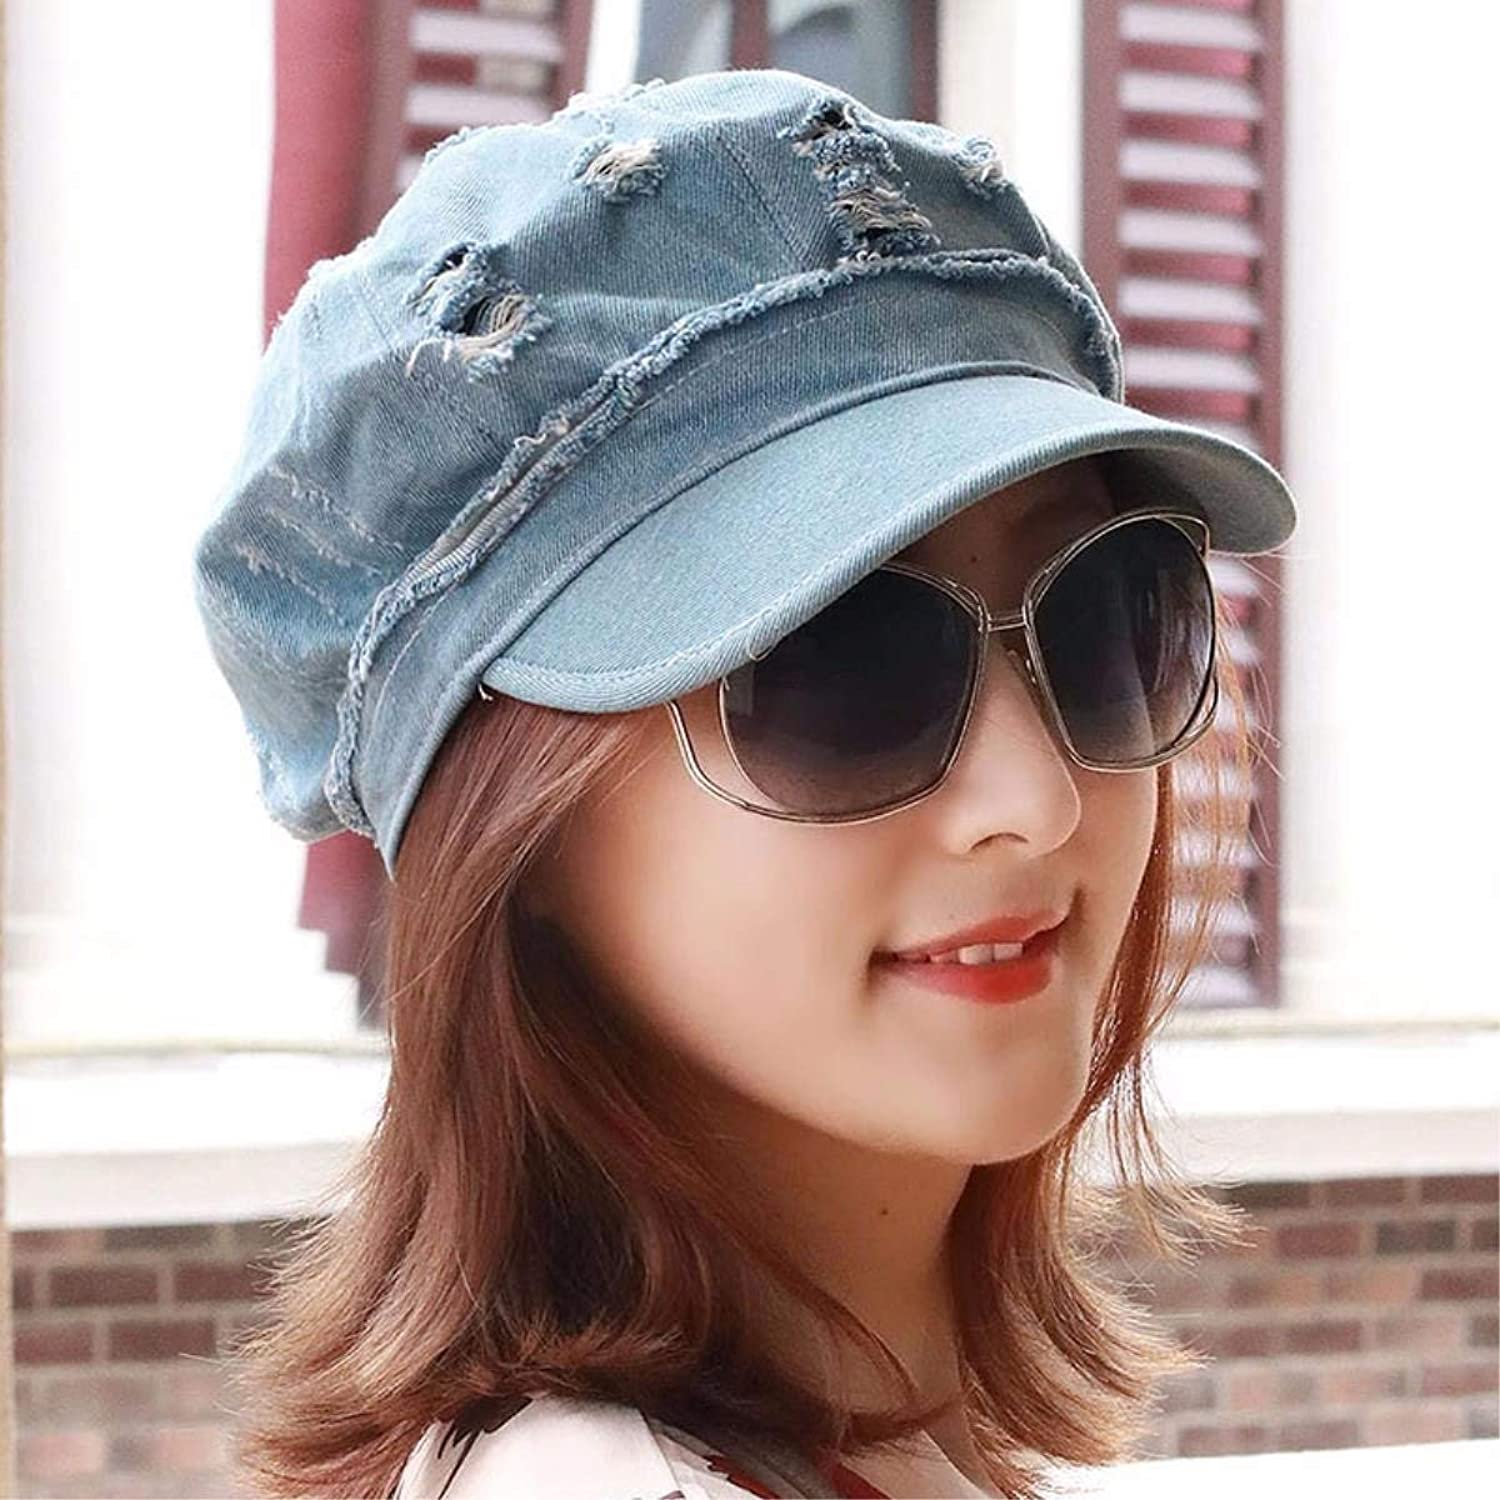 Dingkun The girl like old newspaper' octagonal cap visor cap Fashion Cap beret cowboy hats common between men and women